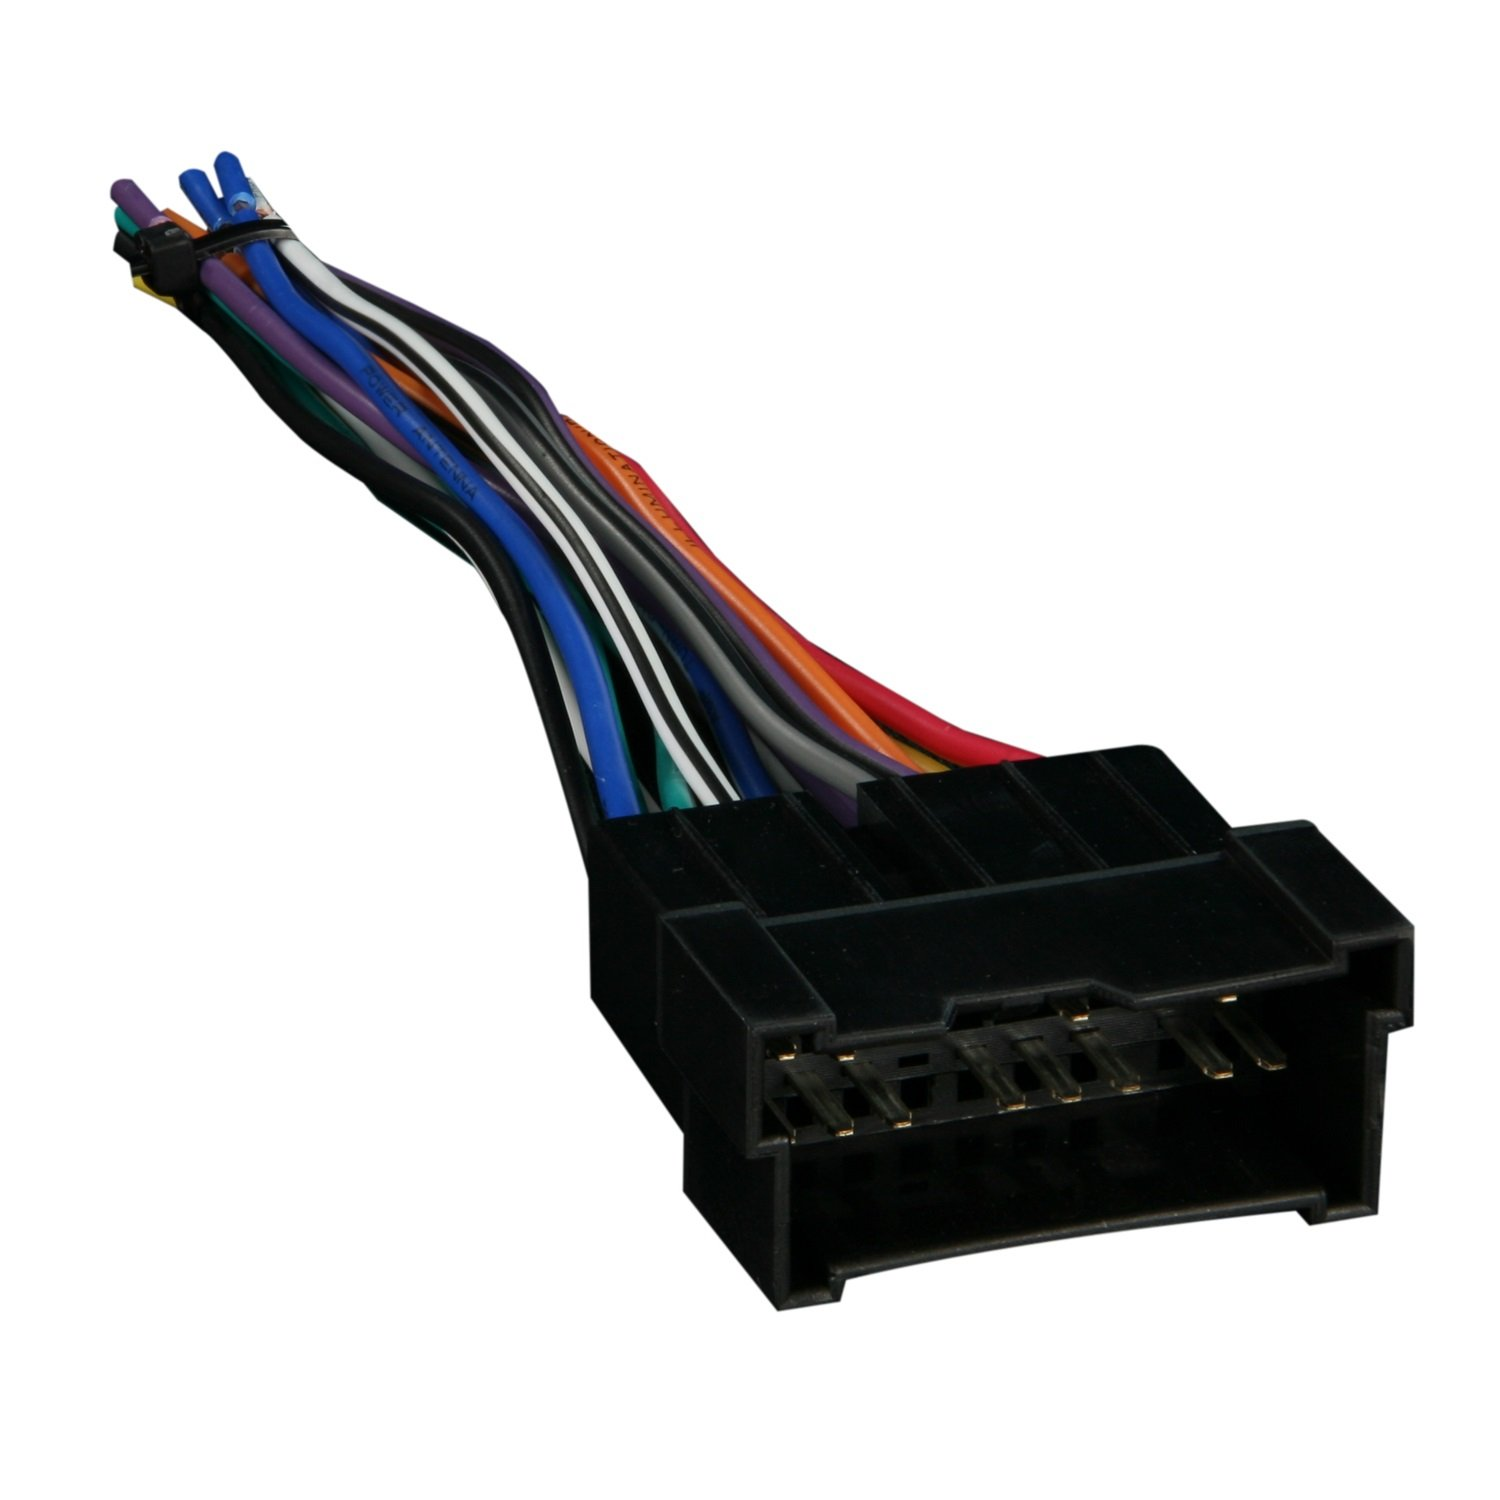 617yeBmOquL._SL1500_ amazon com metra 70 7301 radio wiring harness for hyundai kia 99 wire harness doesn't fit at gsmx.co